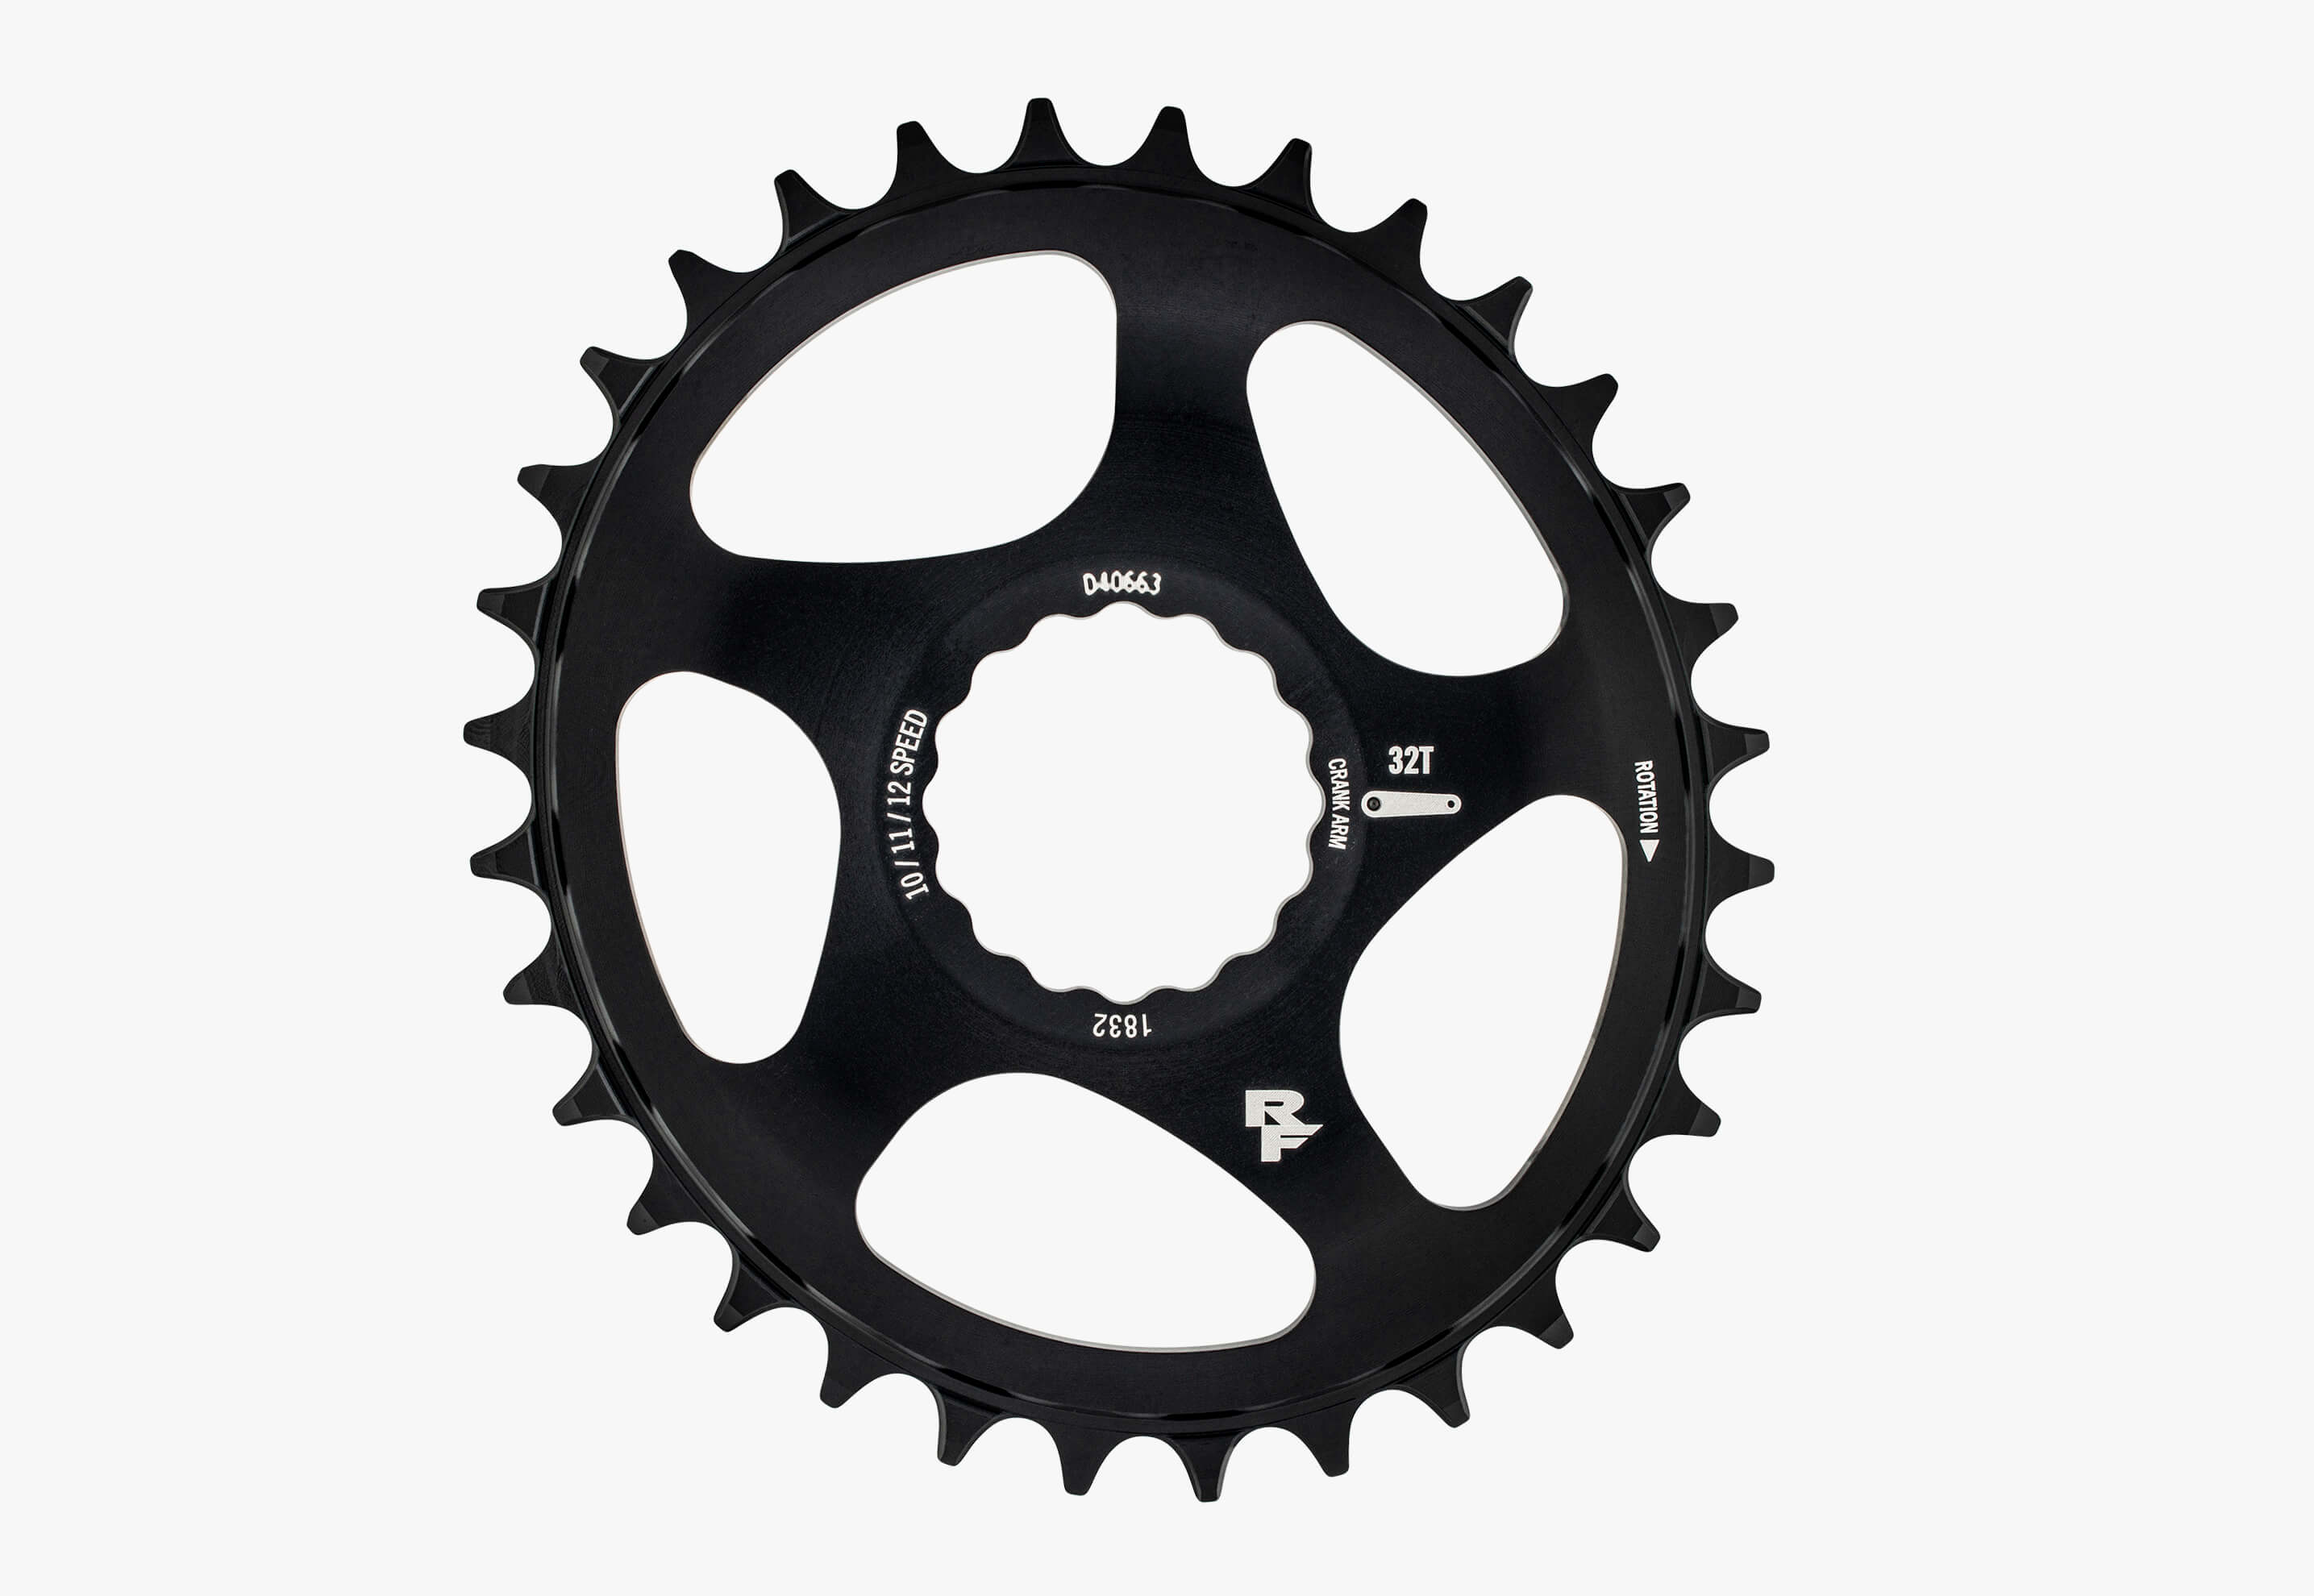 1x Chainring, Cinch Direct Mount - Oval